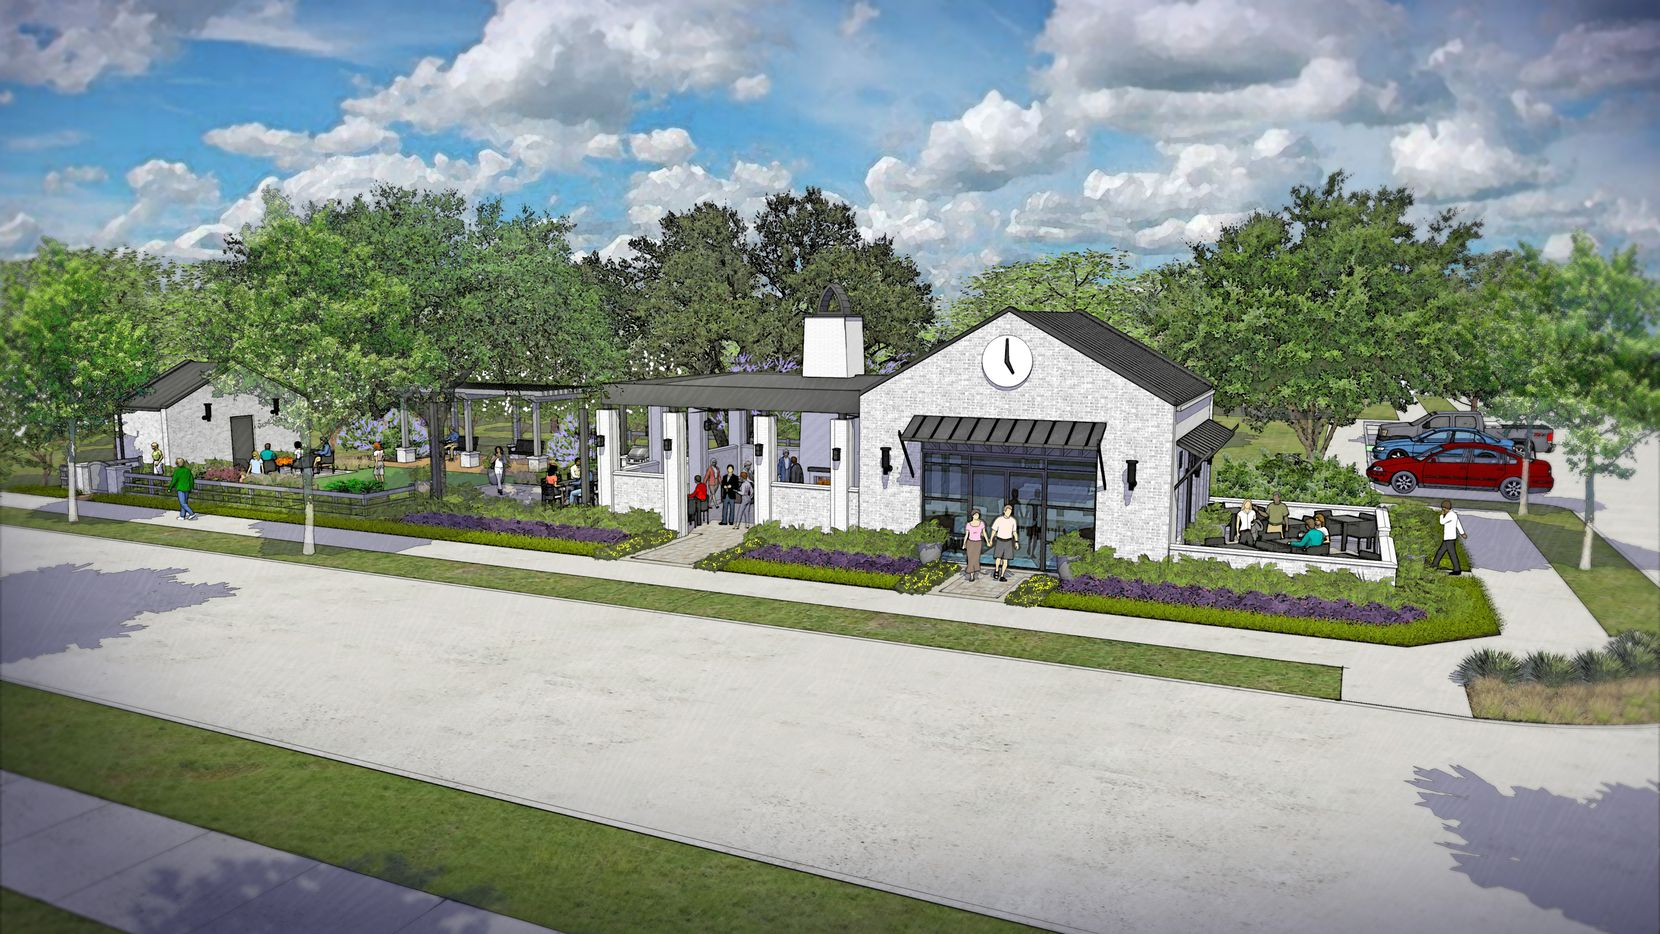 Hill wood Communities' new Harvest Townside neighborhood in Argyle will have smaller homes priced from the $260,000s..